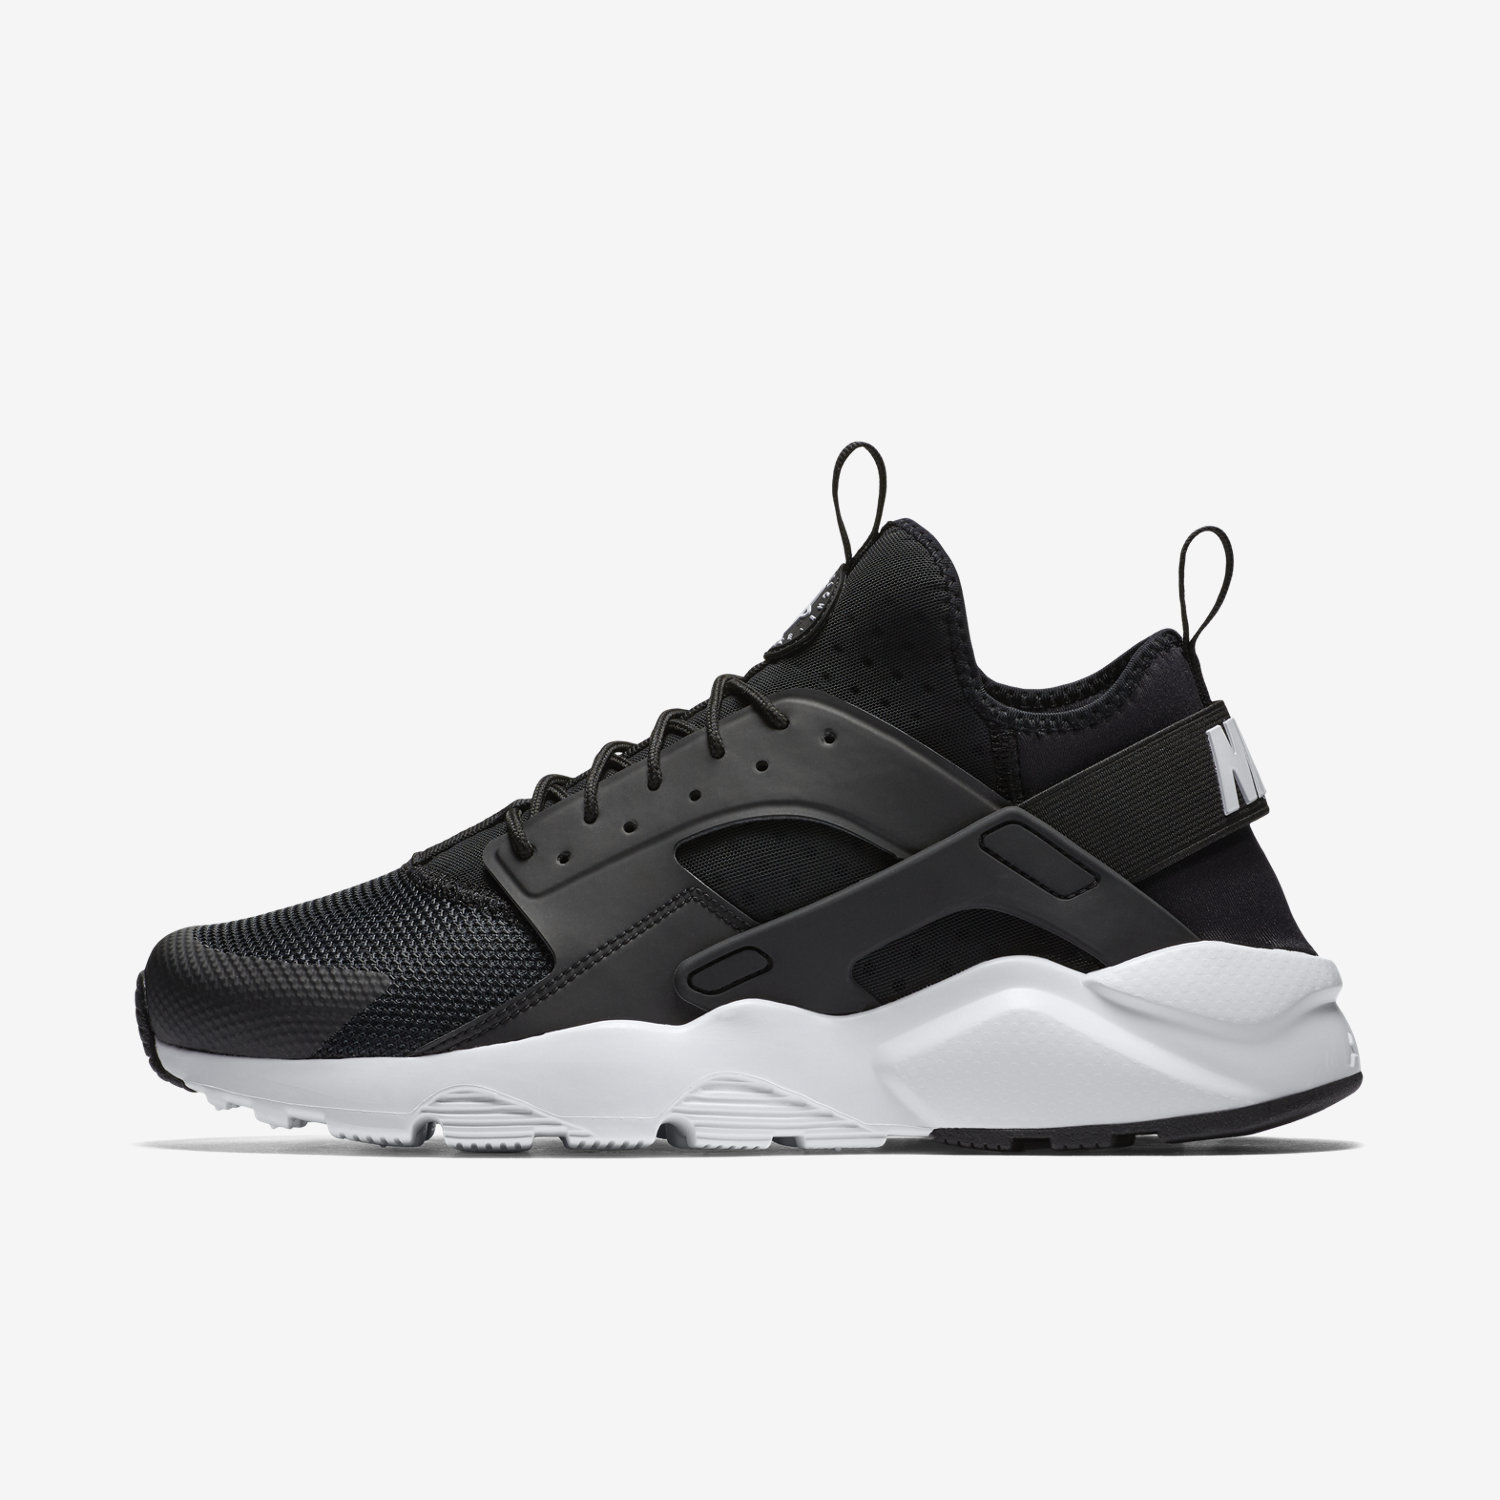 http://images.nike.com/is/image/DotCom/PDP_HERO_ZOOM/NIKE-AIR-HUARACHE-RUN-ULTRA-819685_001_A_PREM.jpg